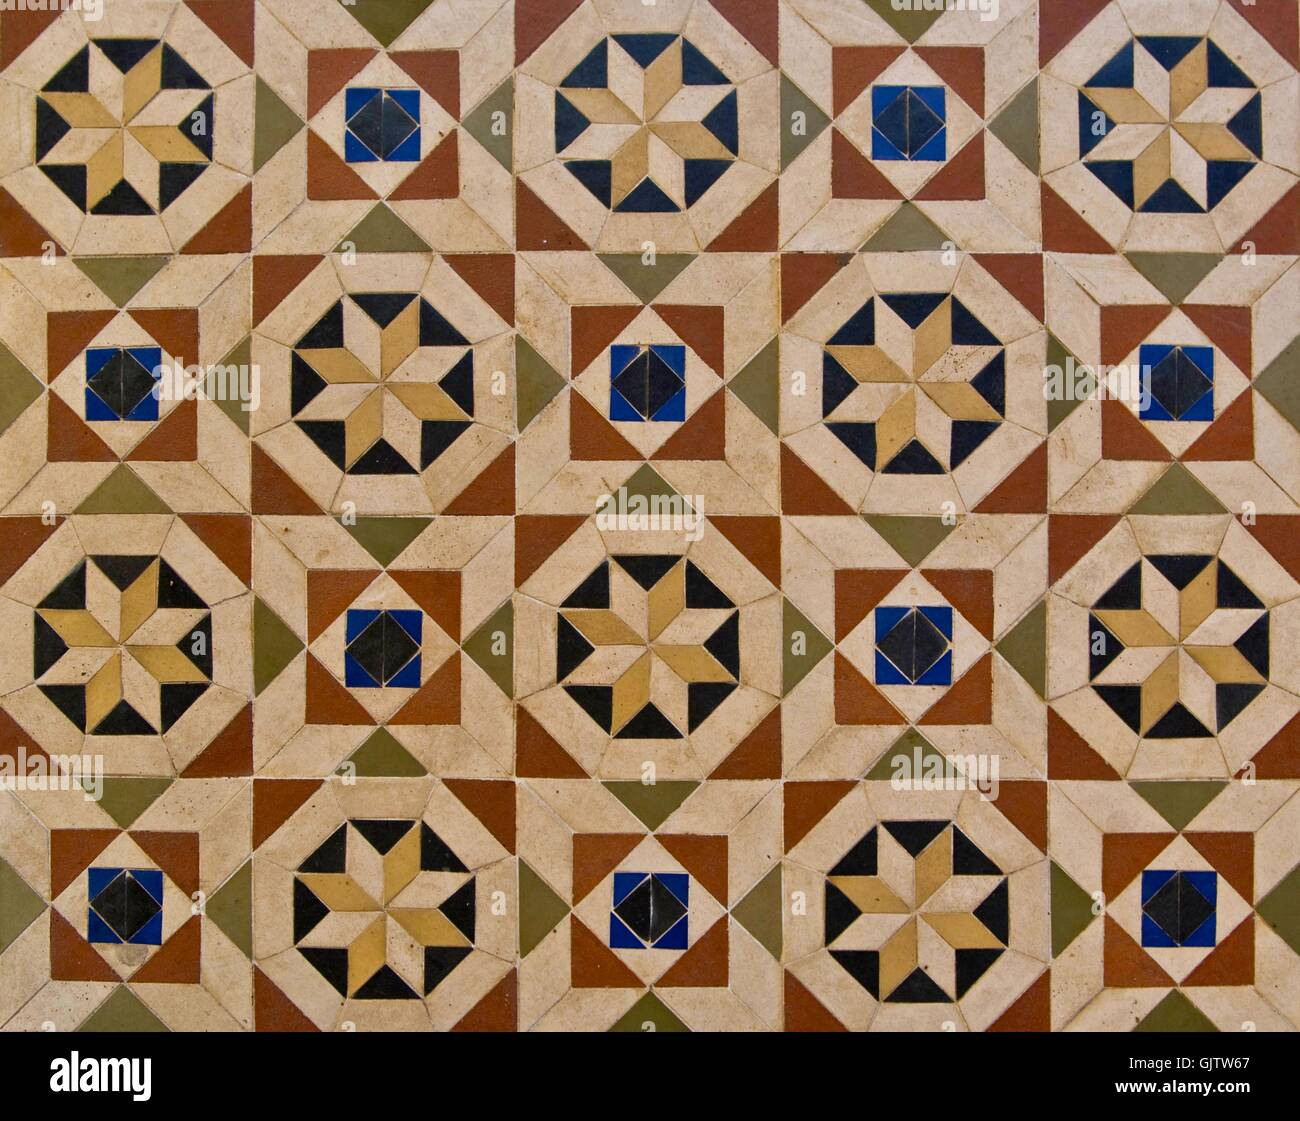 floor with oriental patterns - Stock Image